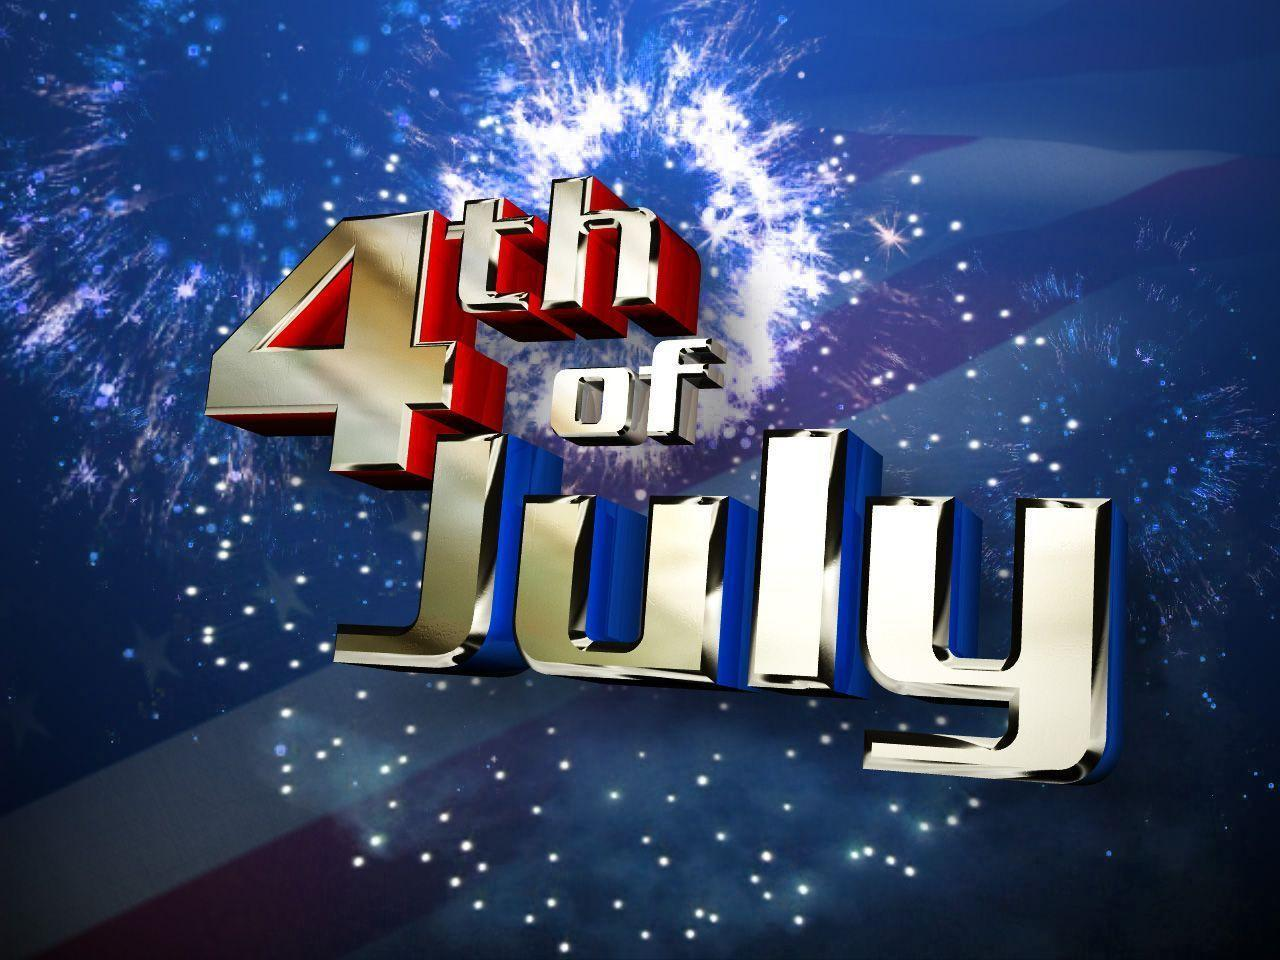 3D 4th of July HD Wallpaper | High Definition Wallpaper Desktop